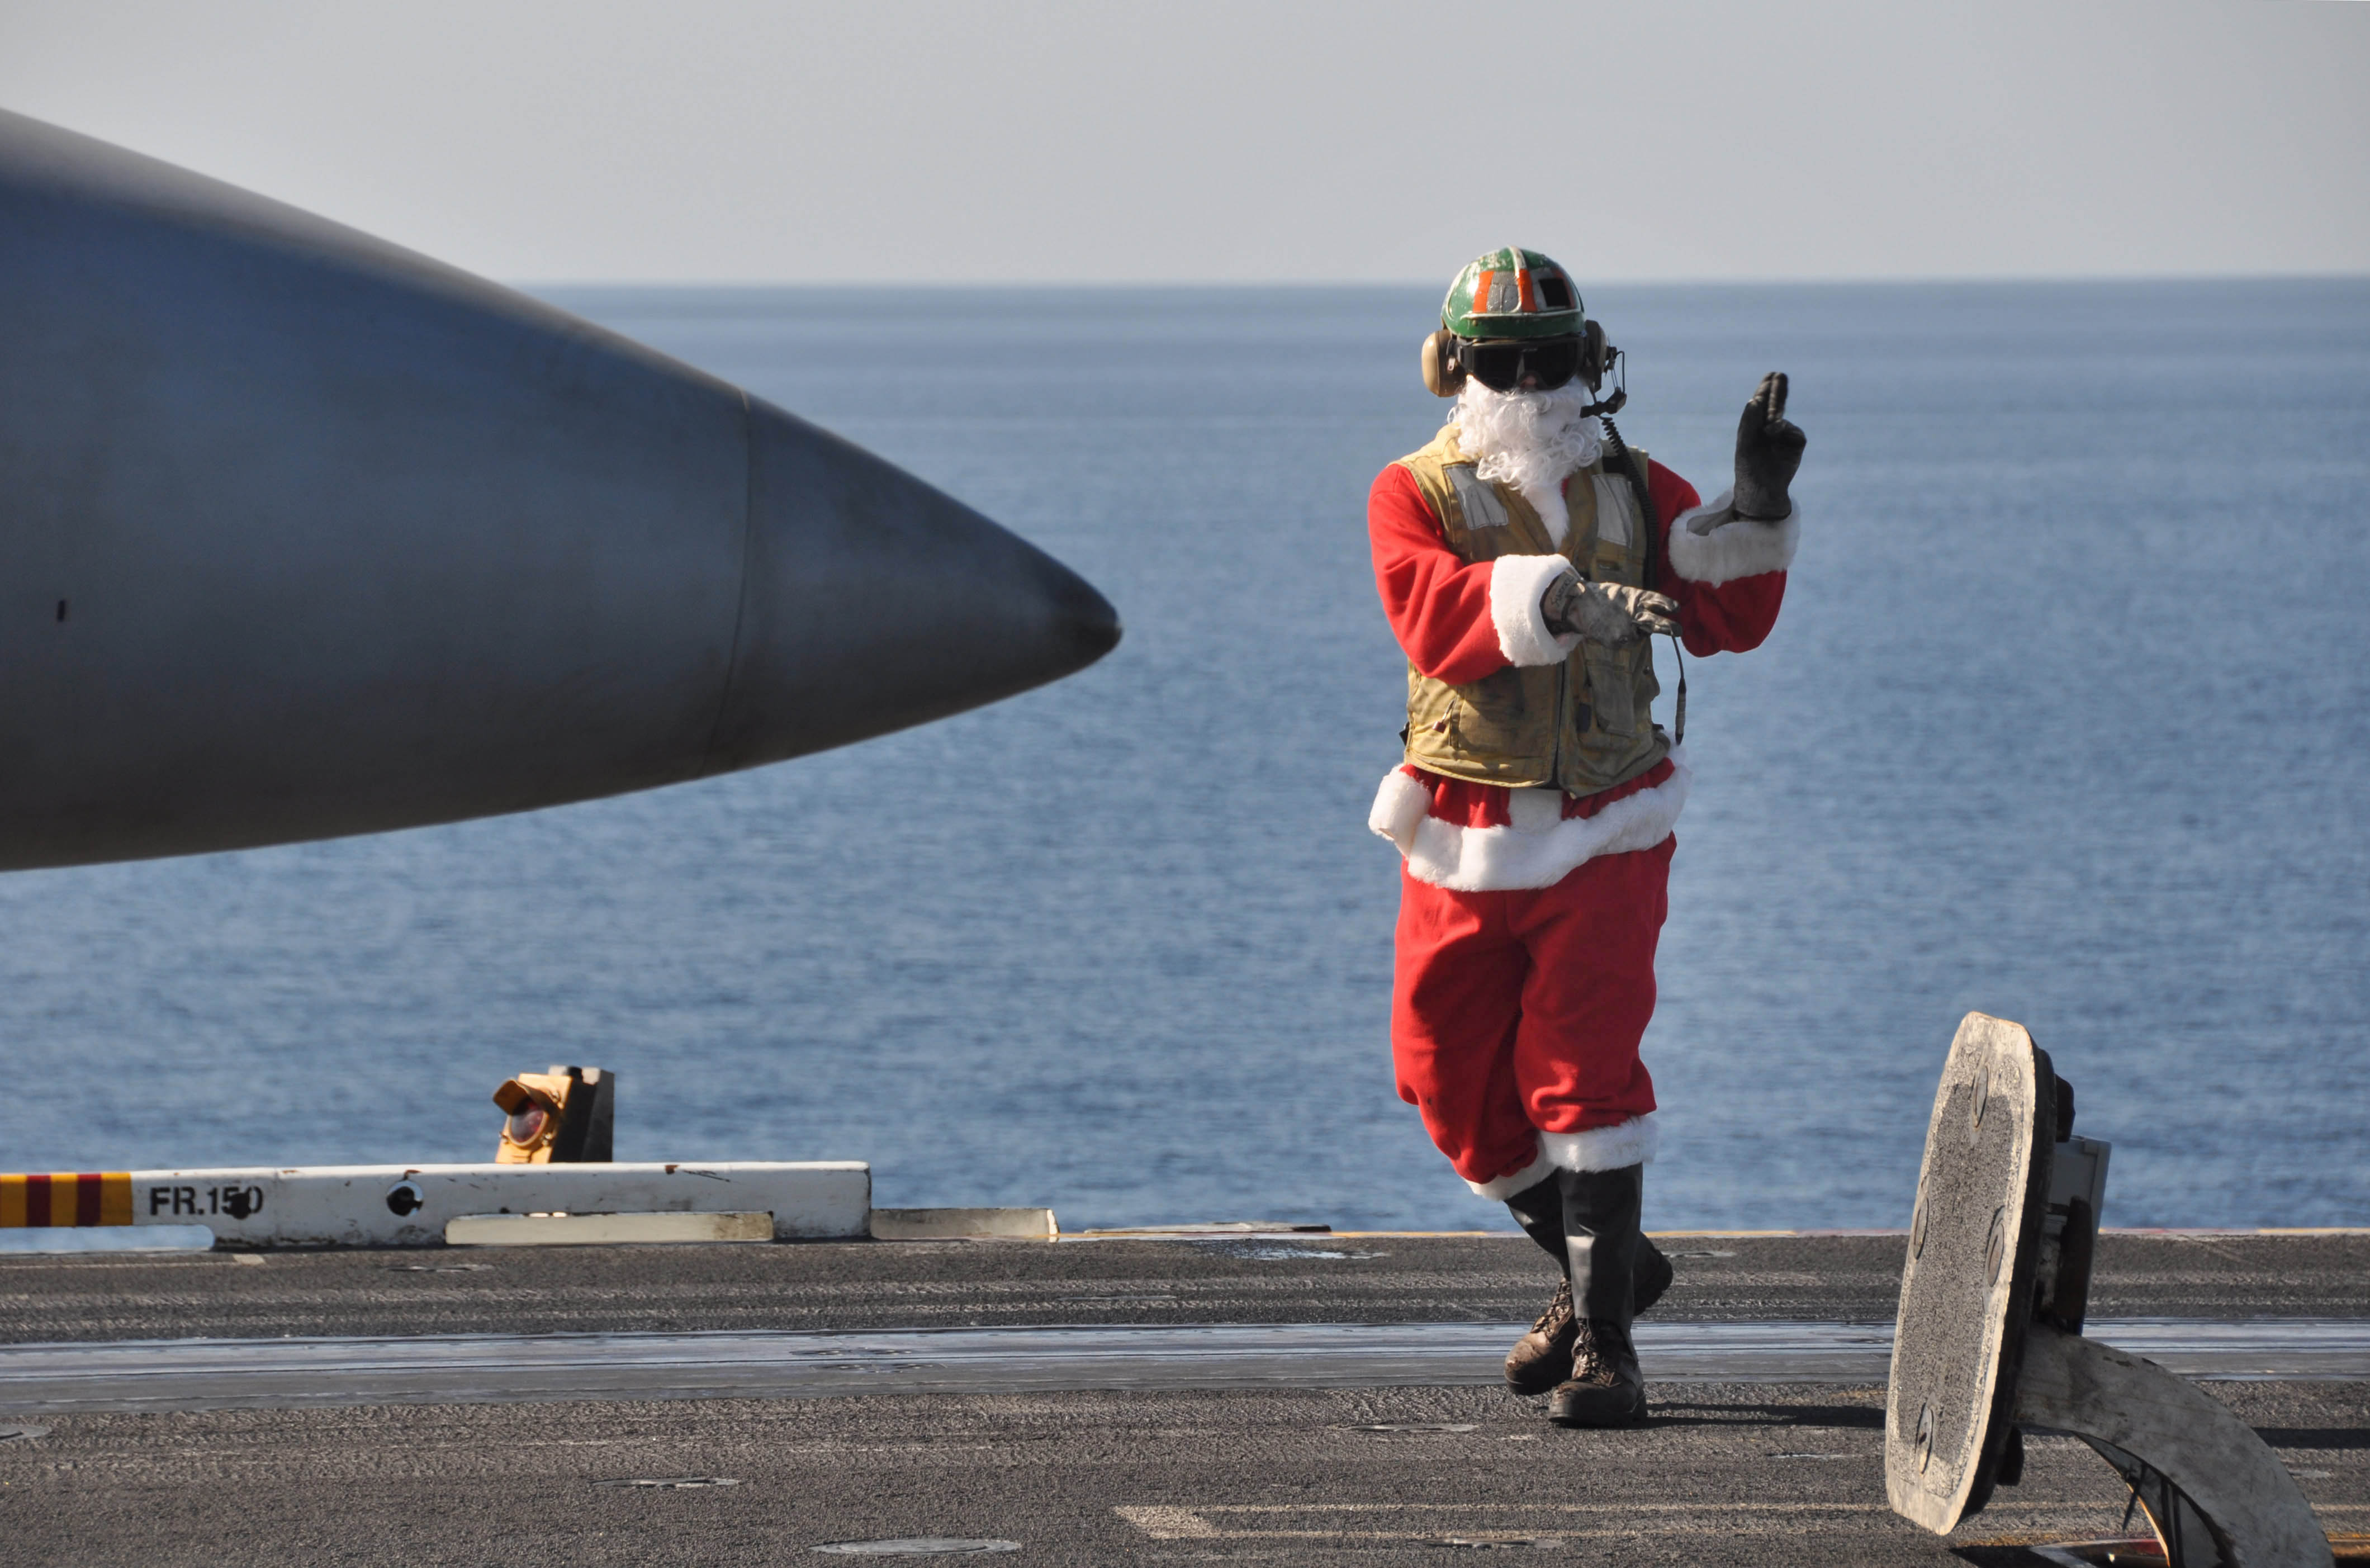 Merry Christmas US_Navy_091225-N-8421M-103_t._Jon_Sunderland_dresses_in_a_Santa_suite_while_directing_aircraft_operations_aboard_the_aircraft_carrier_USS_Nimitz_(CVN_68)_Christmas_Day